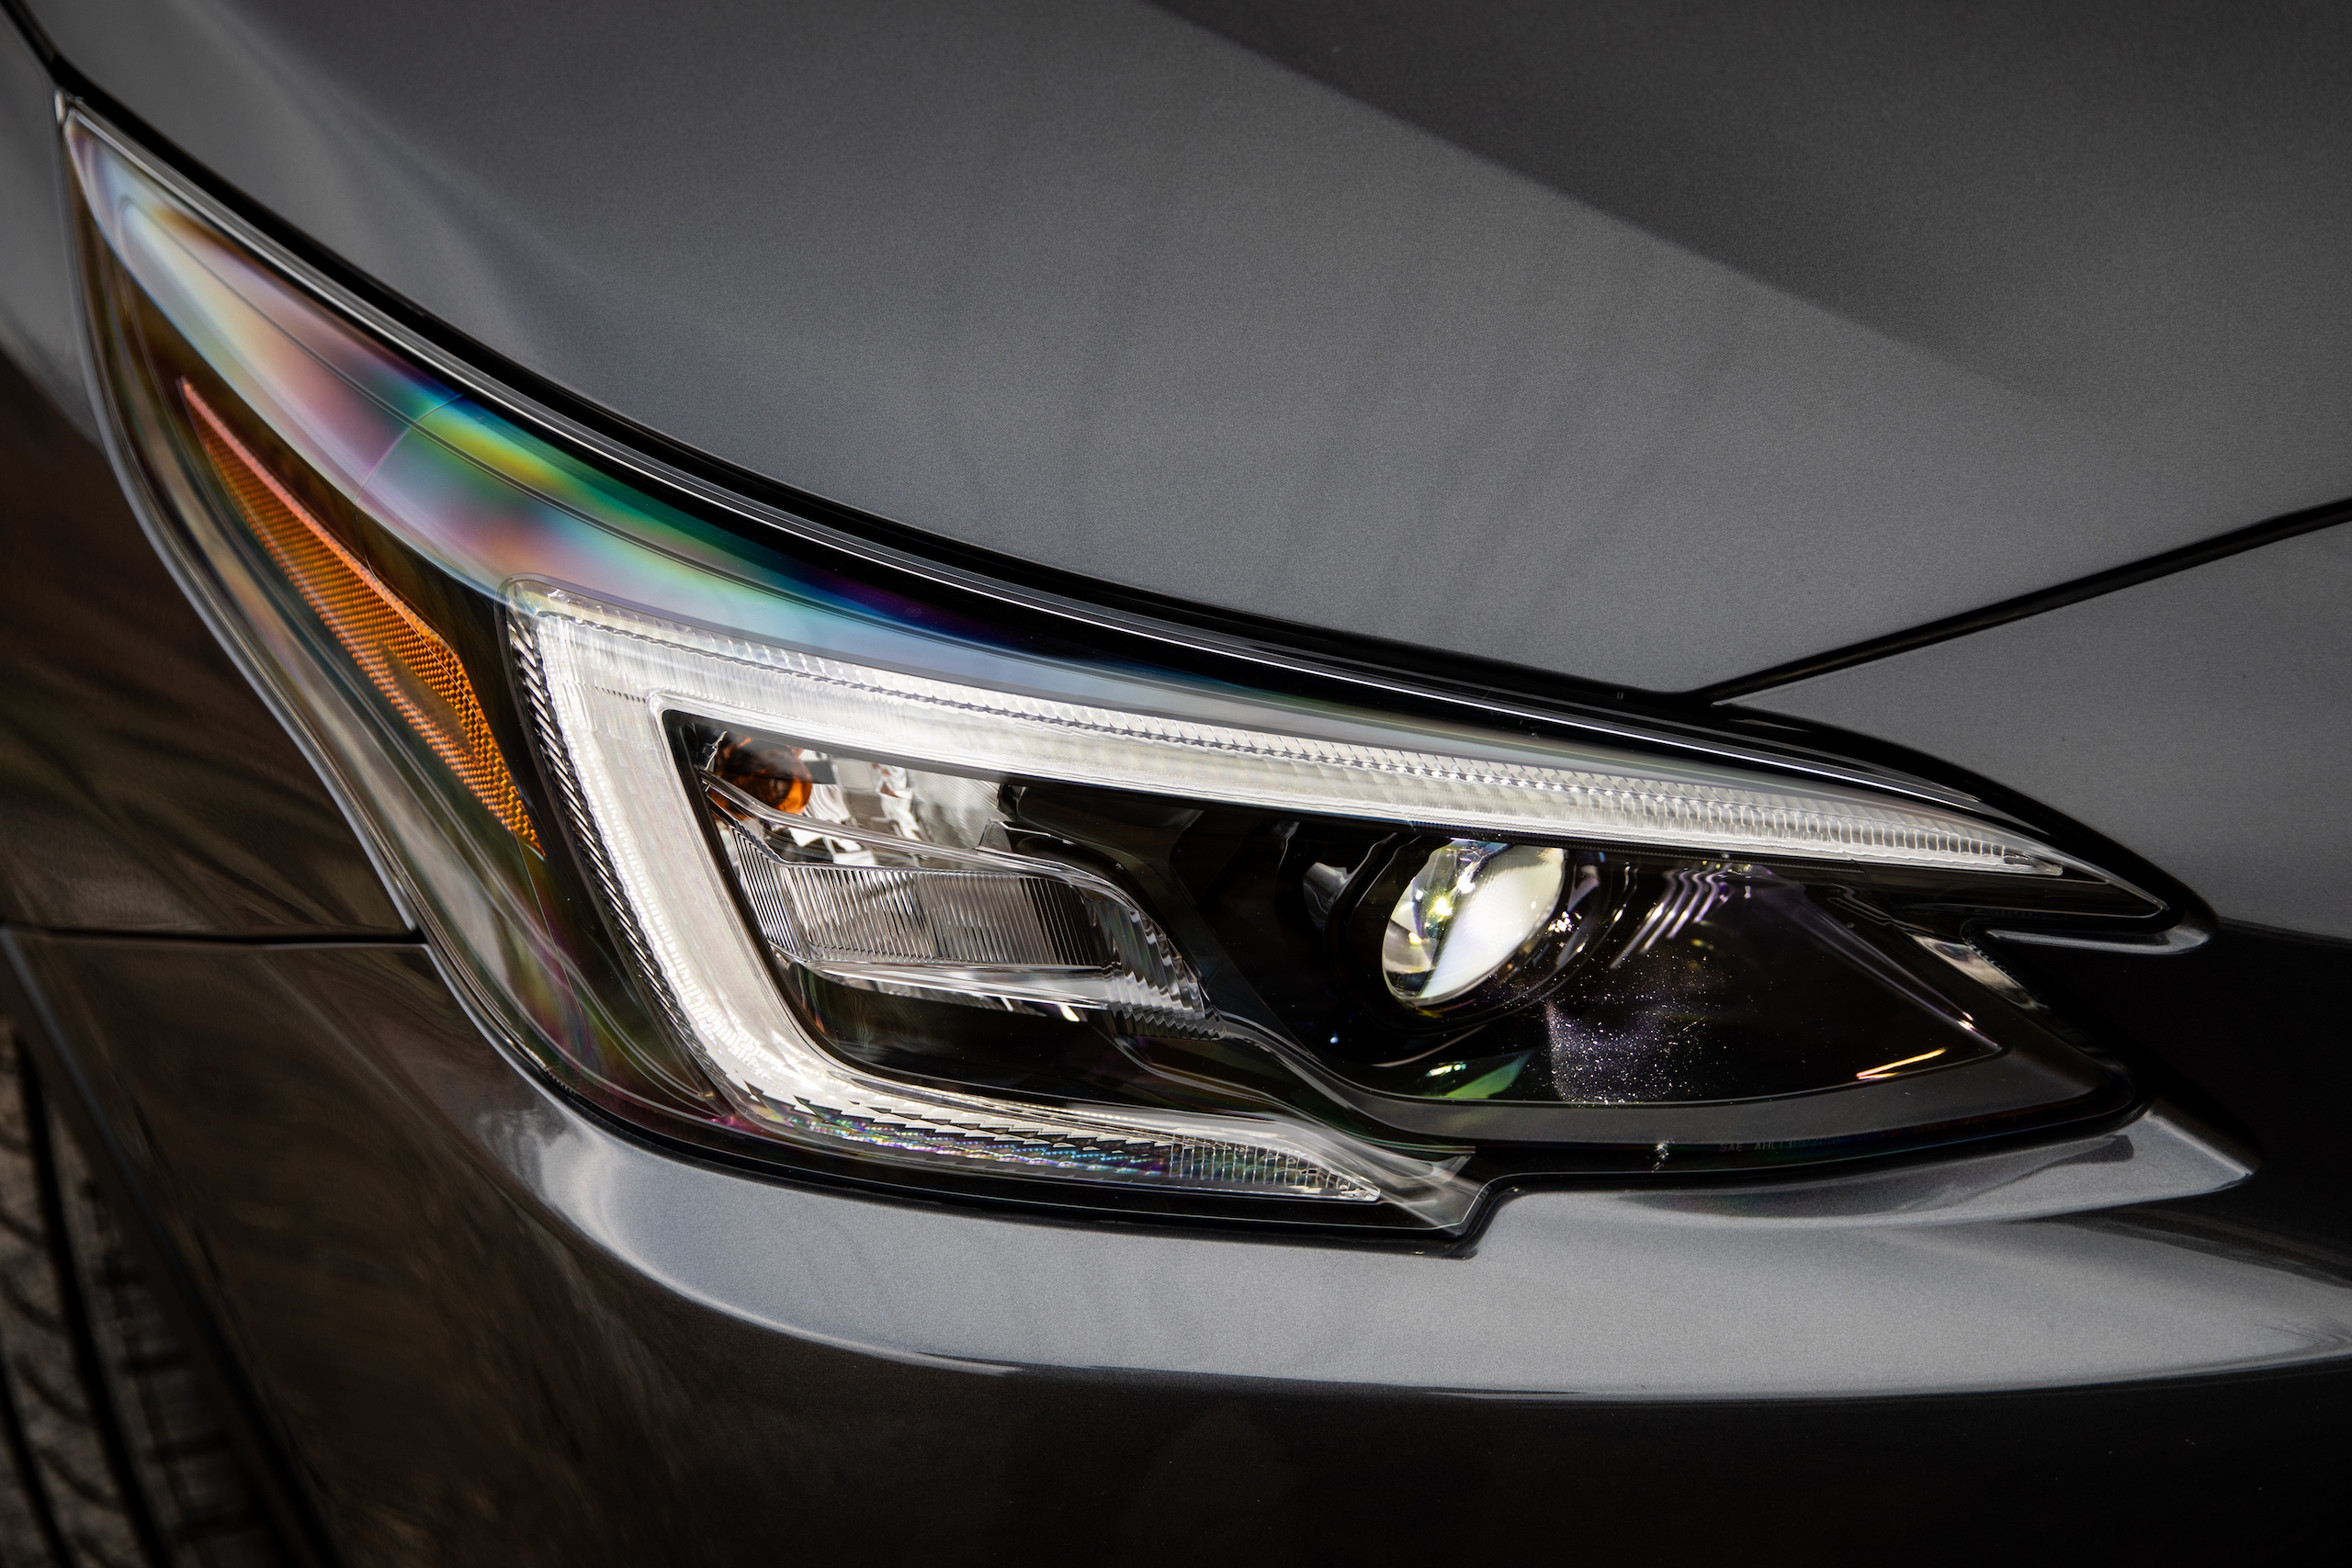 Subaru Outback front headlight detail